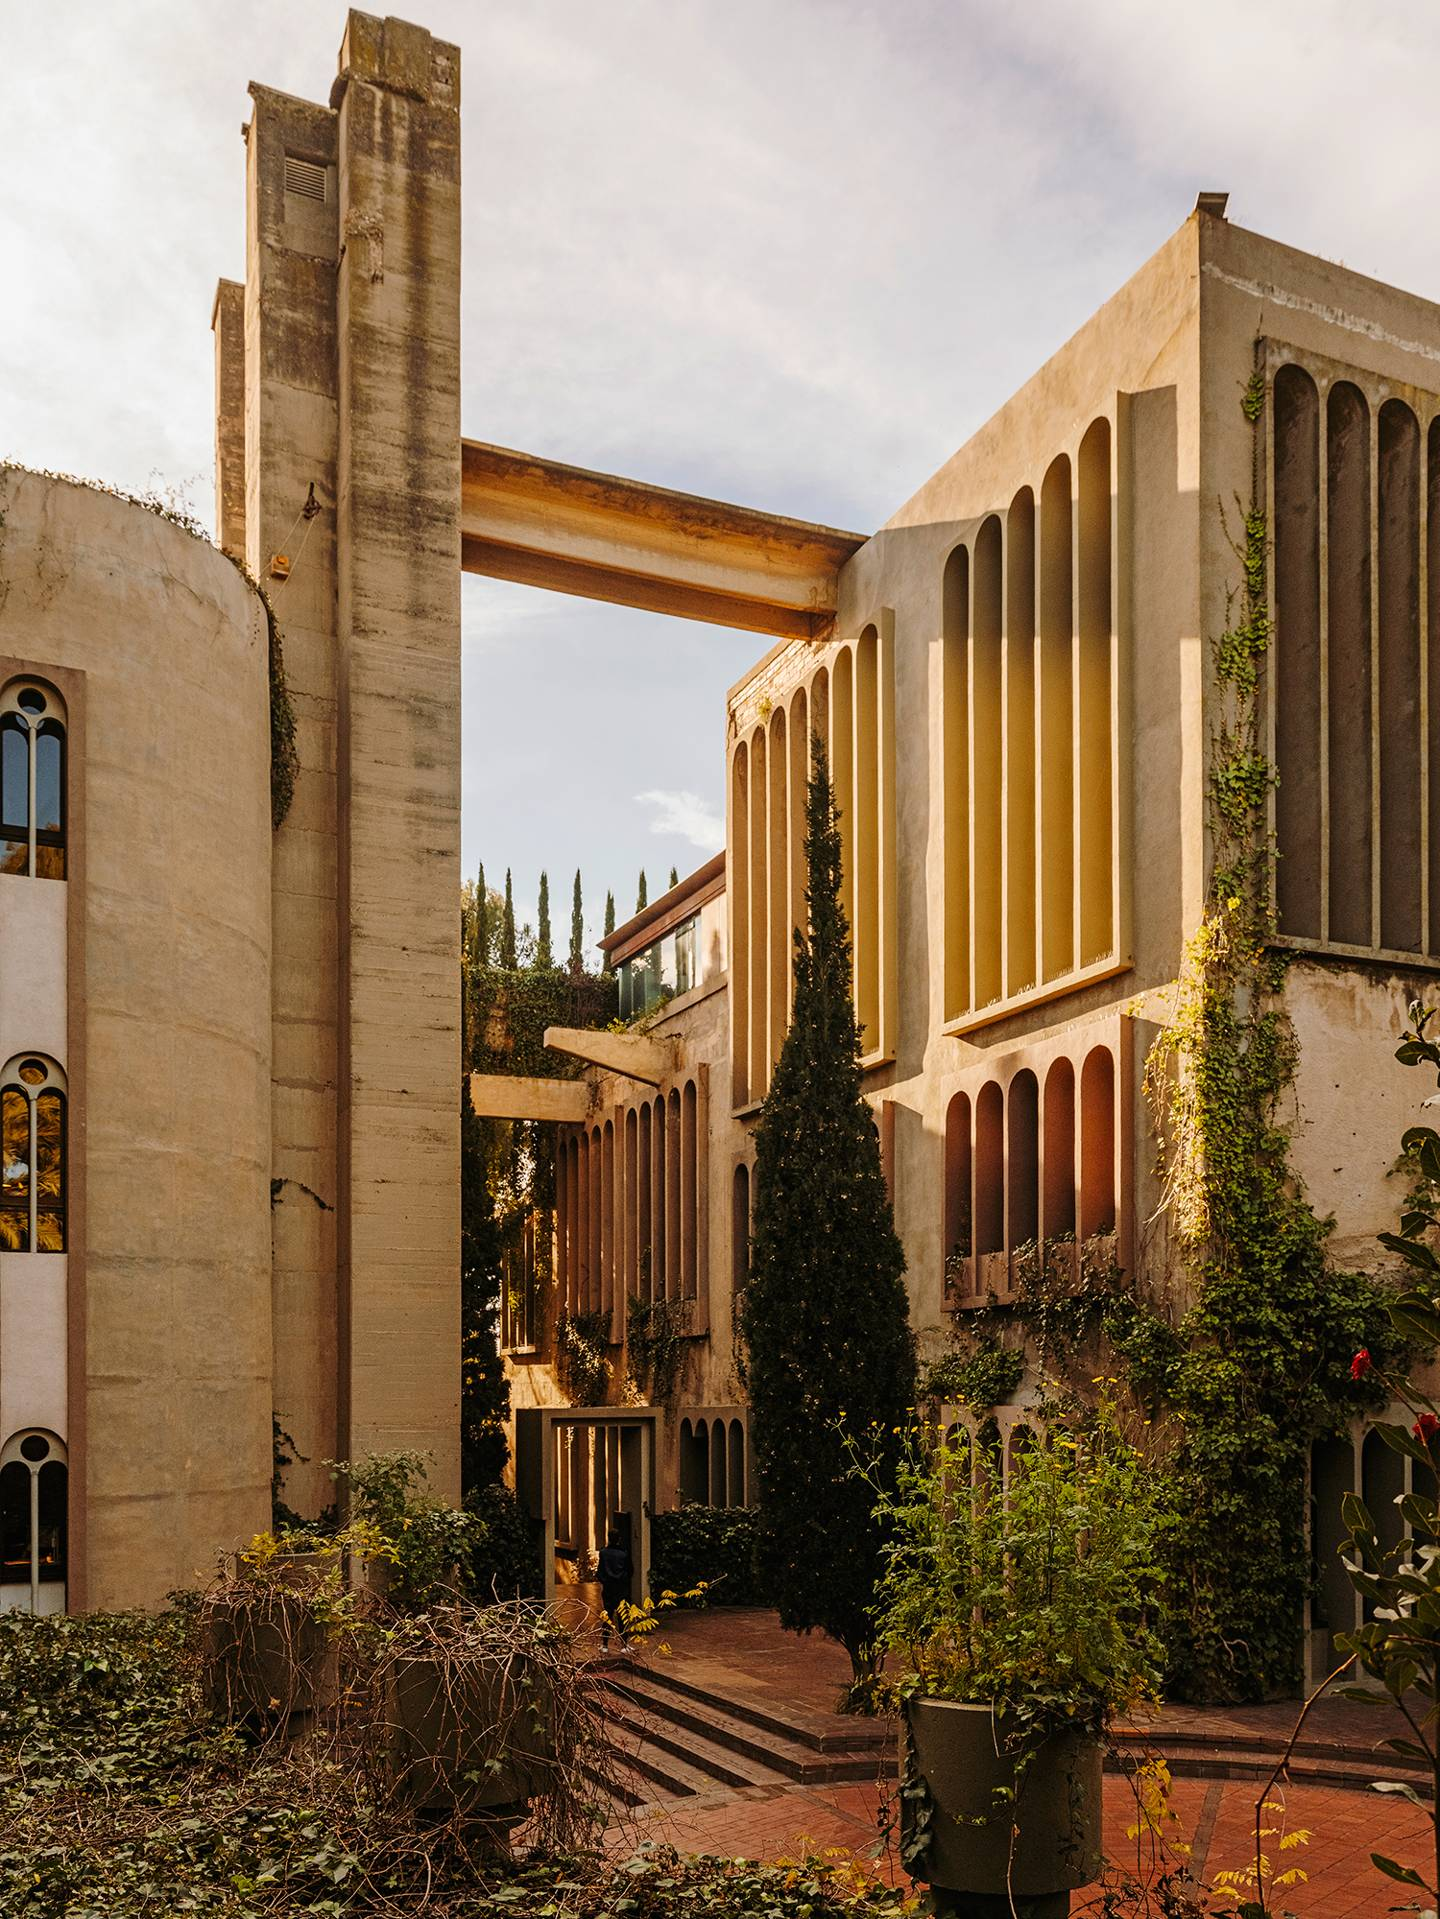 The story of La Fábrican, the cement factory that became architect Ricardo Bofill's home